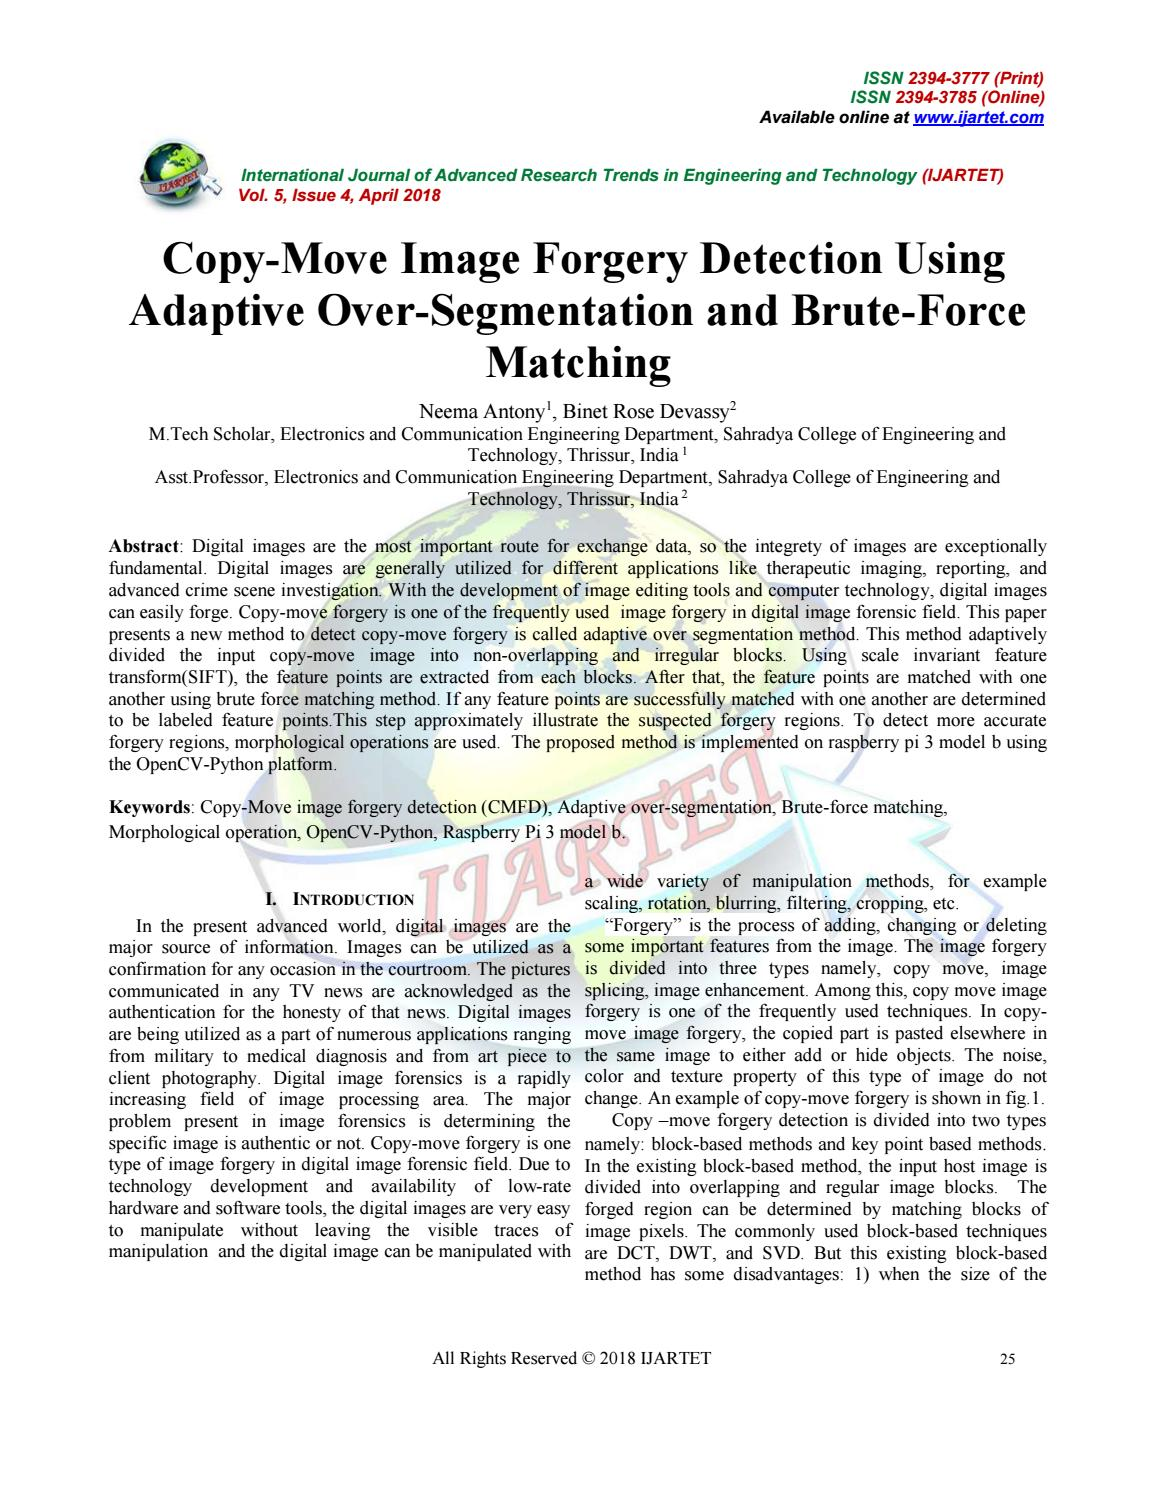 Copy move image forgery detection using by IJARTET - issuu